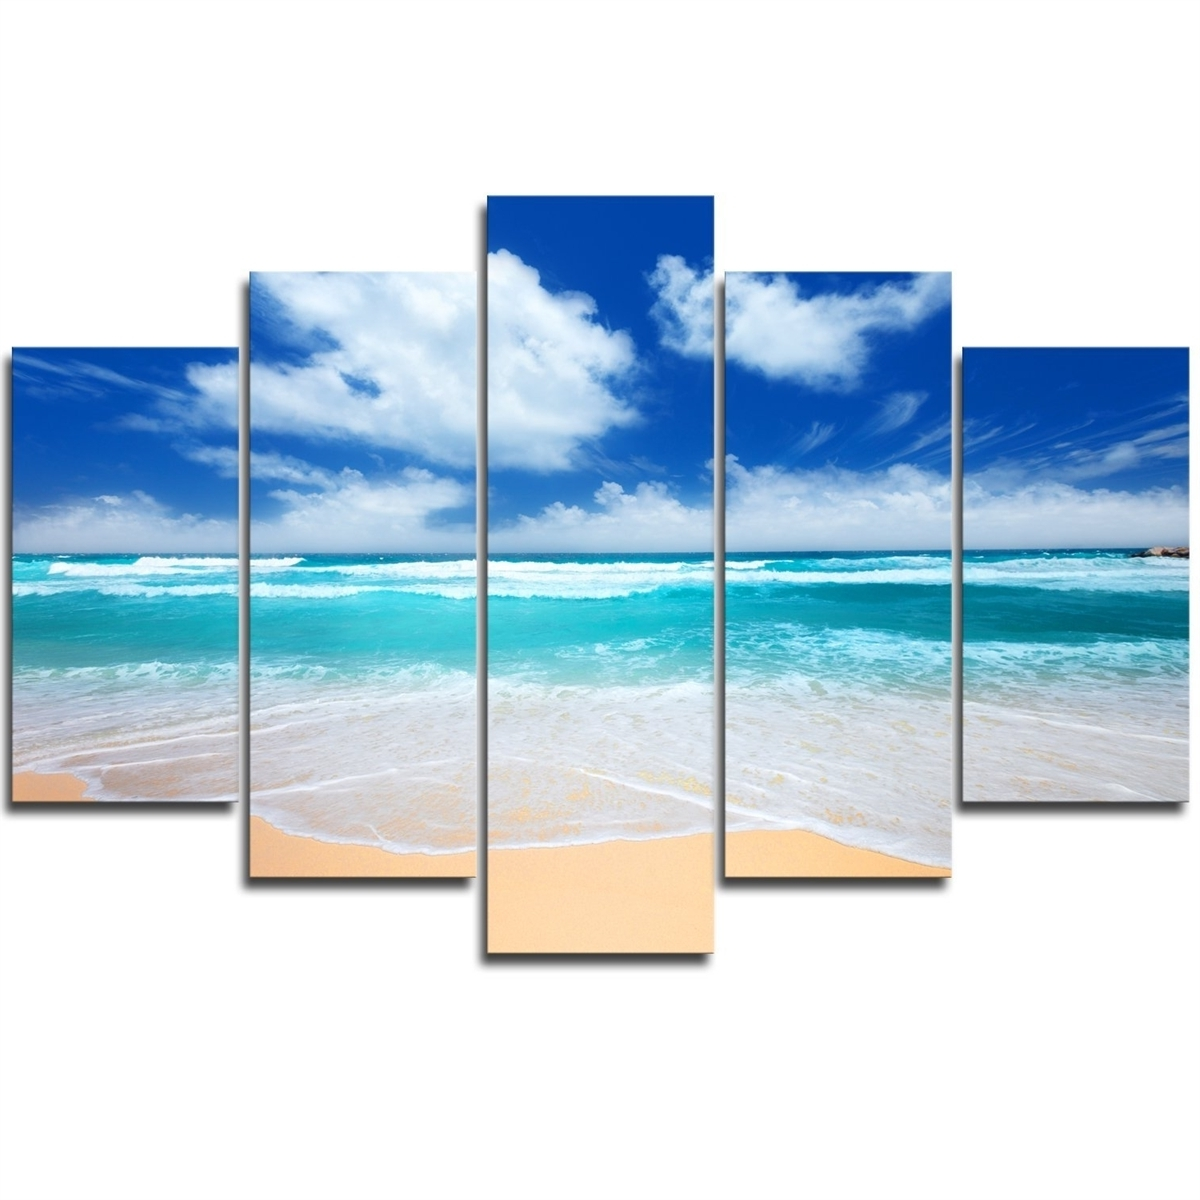 Beach Wall Art With Well Known Piece Framed Canvas Beach Wall Art Sunrise Beach Seascape (View 5 of 15)